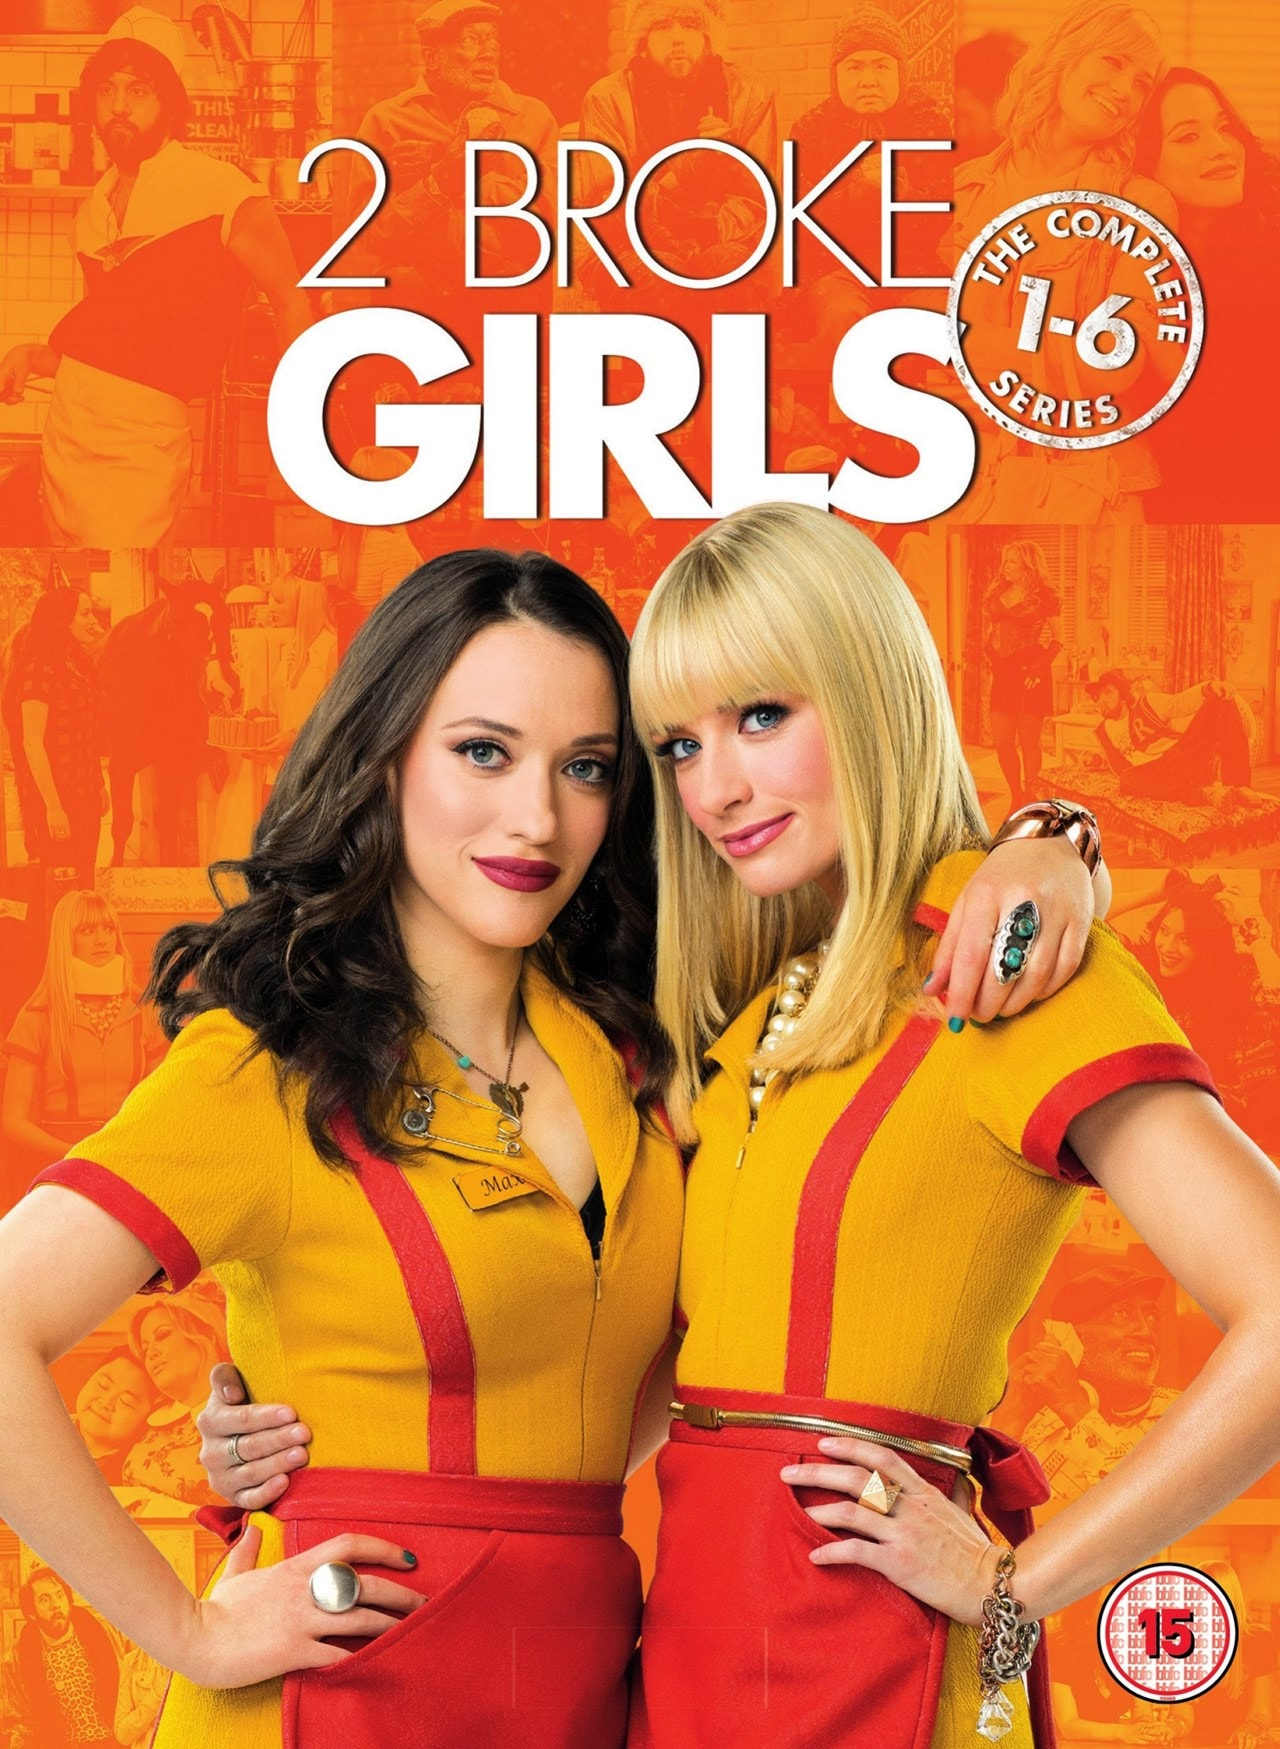 2 Broke Girls: The Complete Series 1-6 - 1